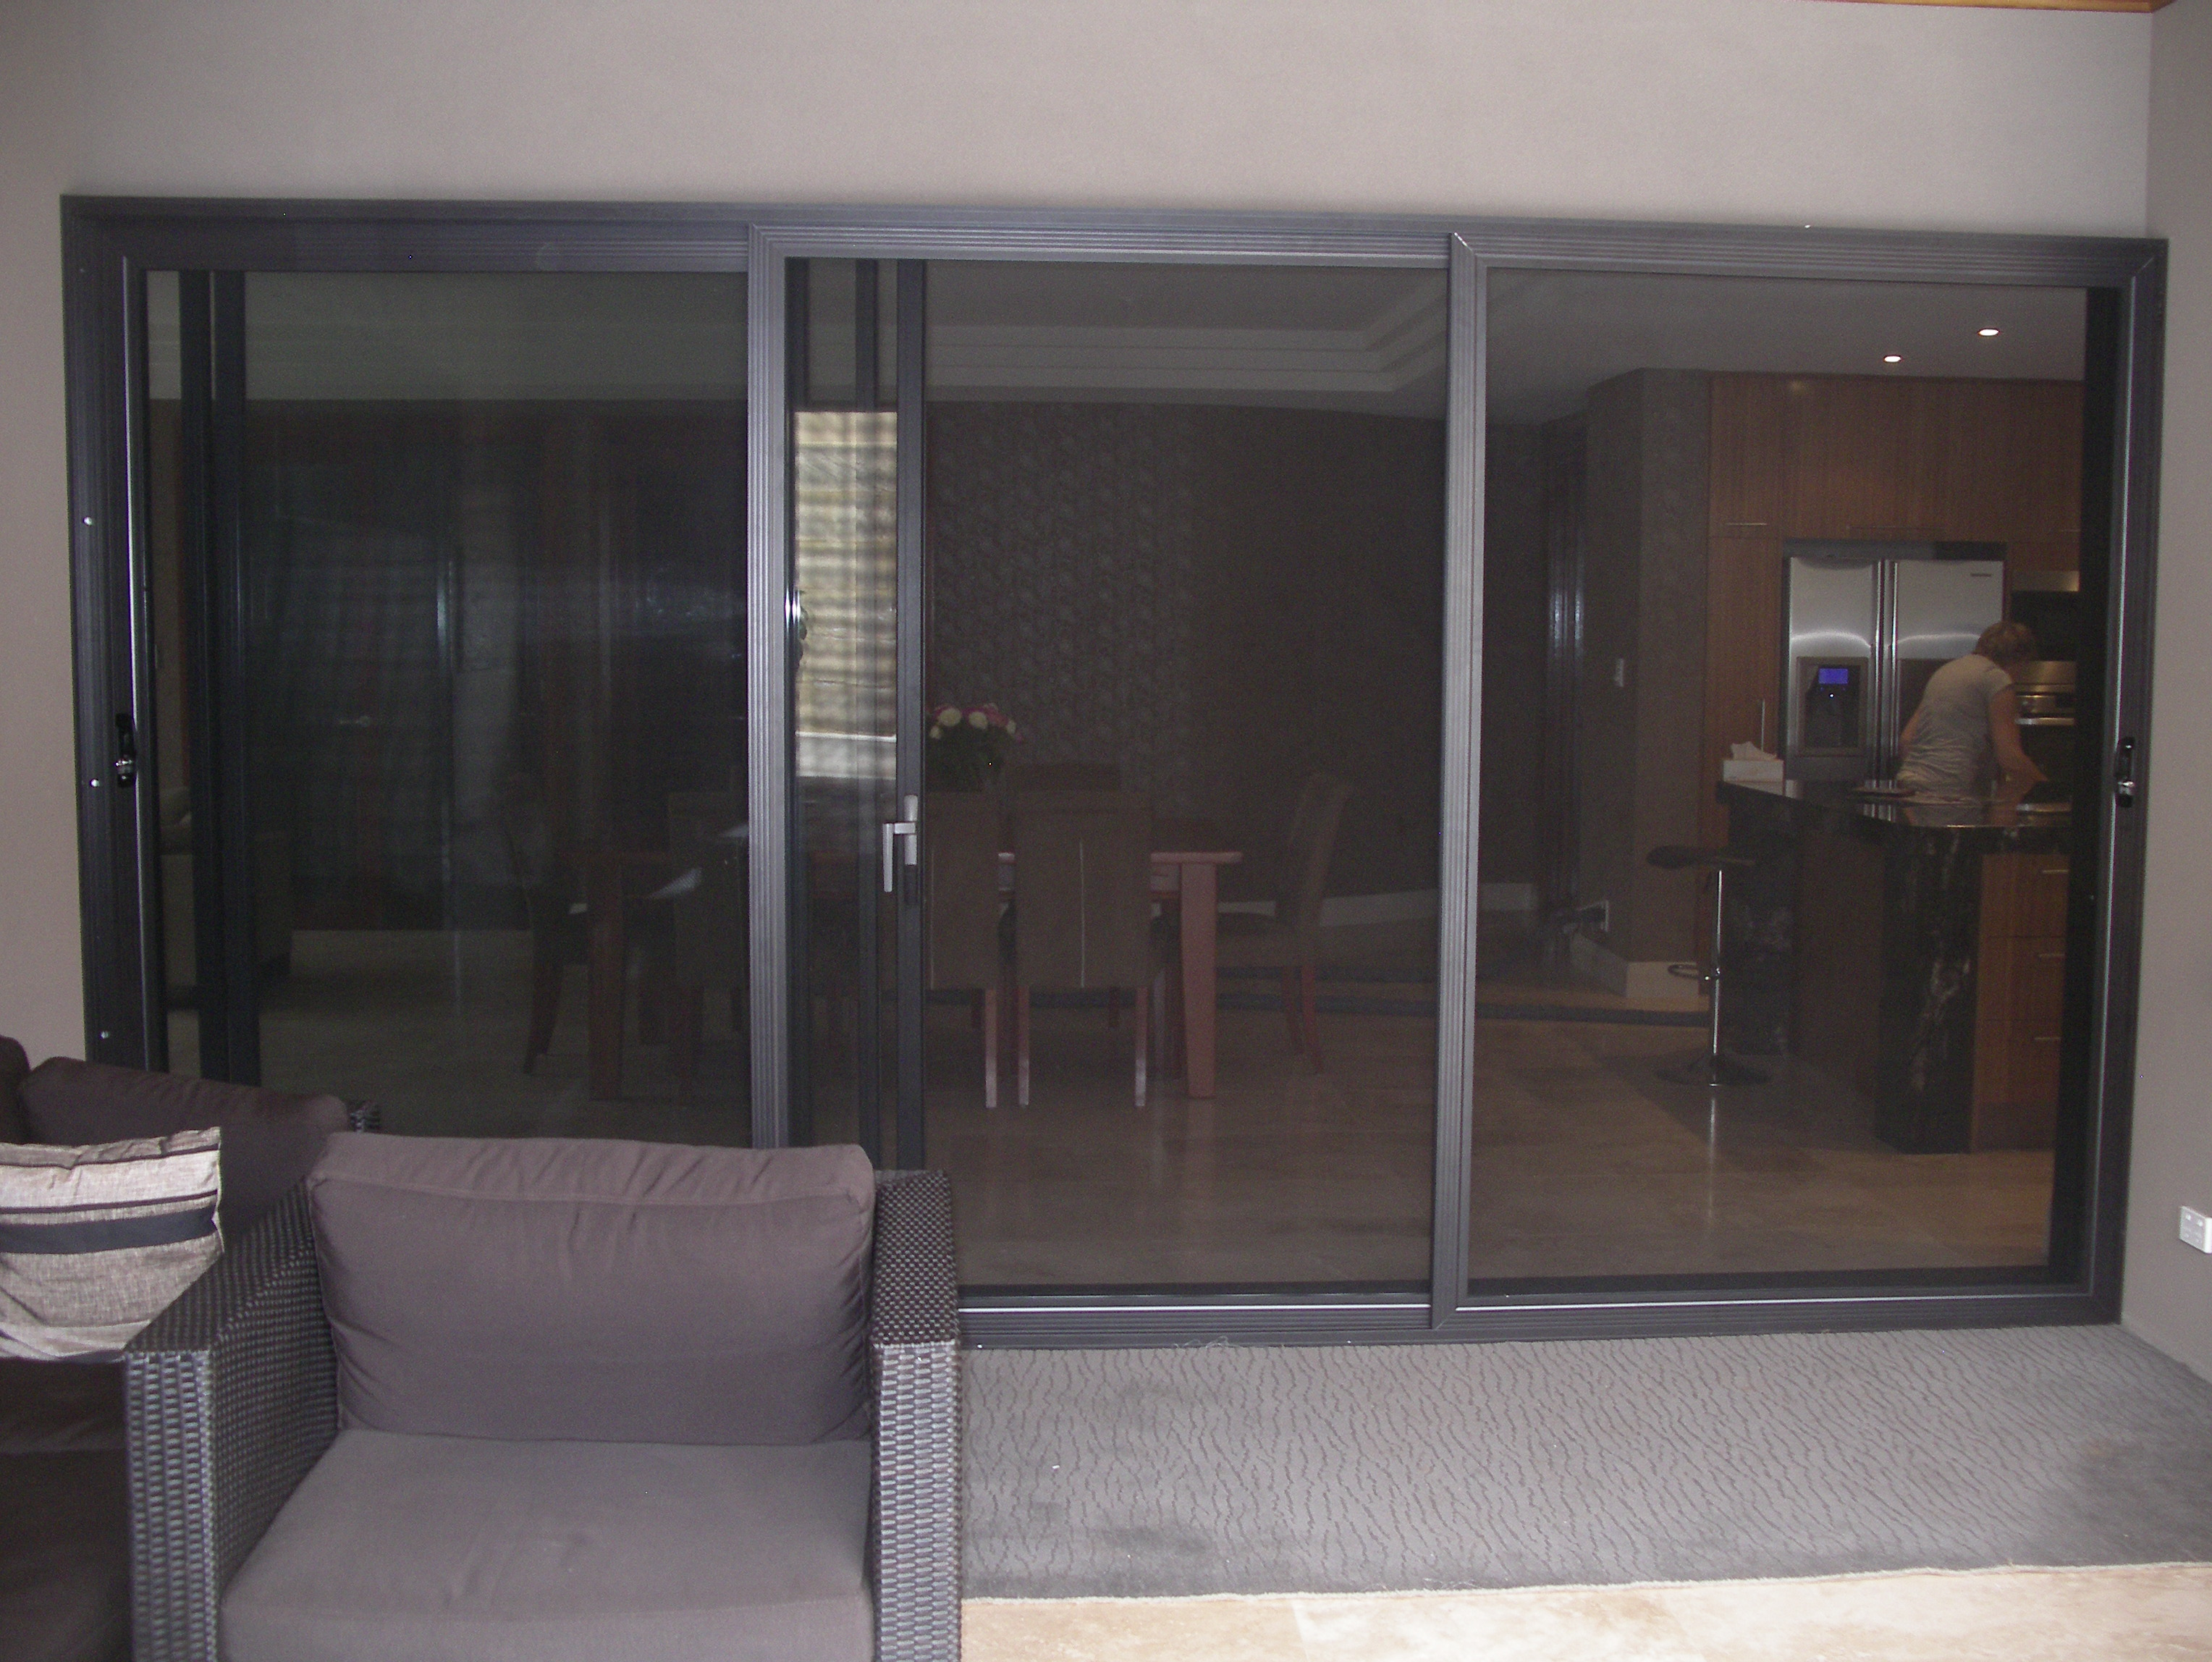 Sliding Security Screen Doors with Glass 3056 x 2296